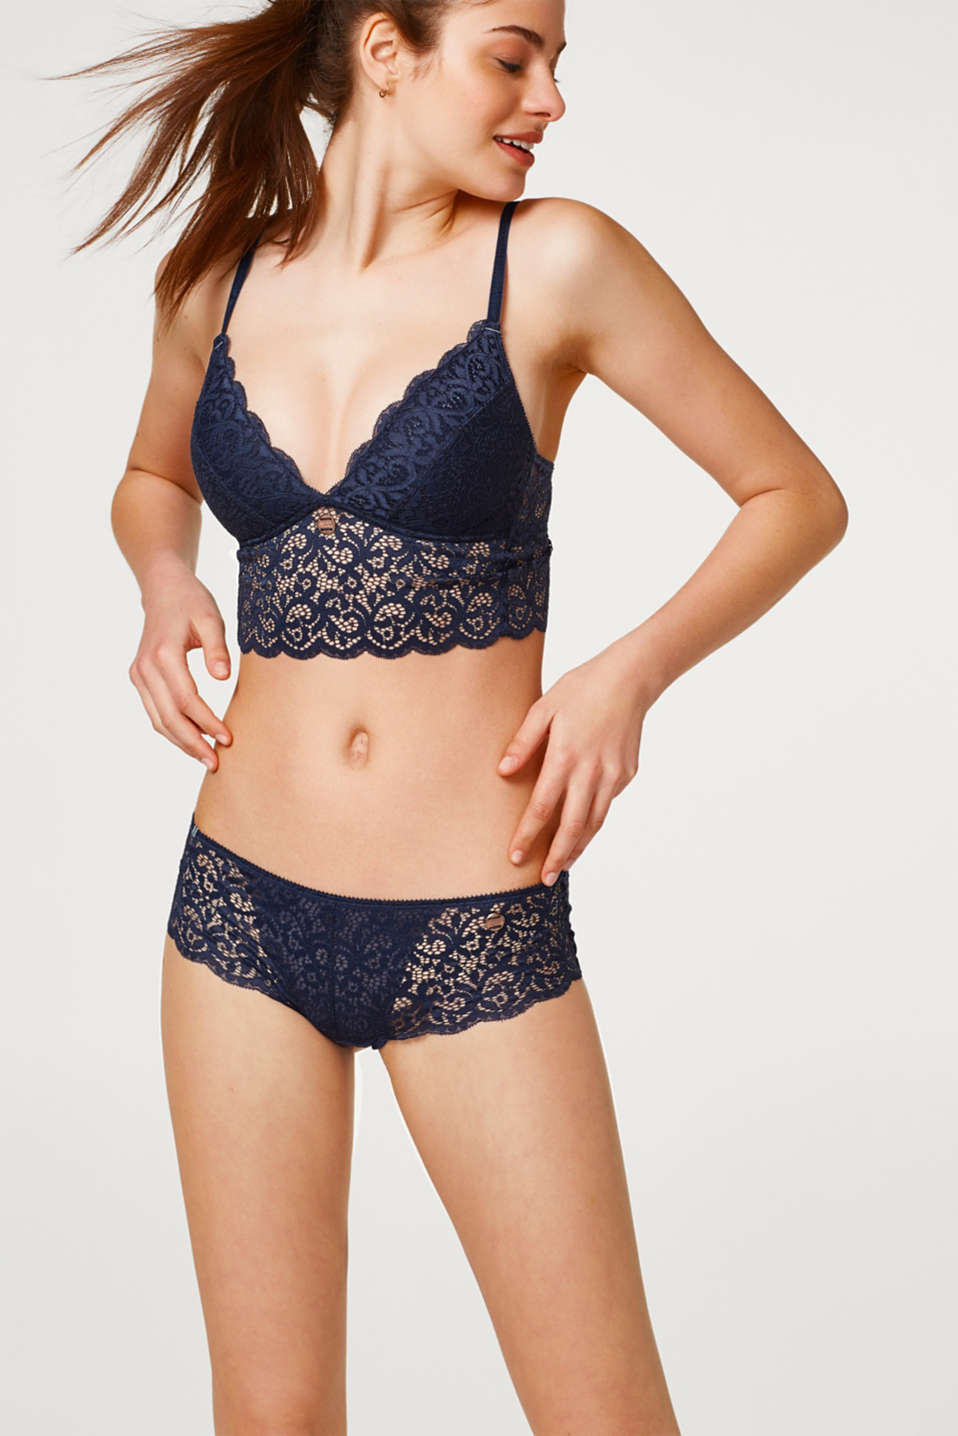 Esprit - Hipster shorts in decorative lace